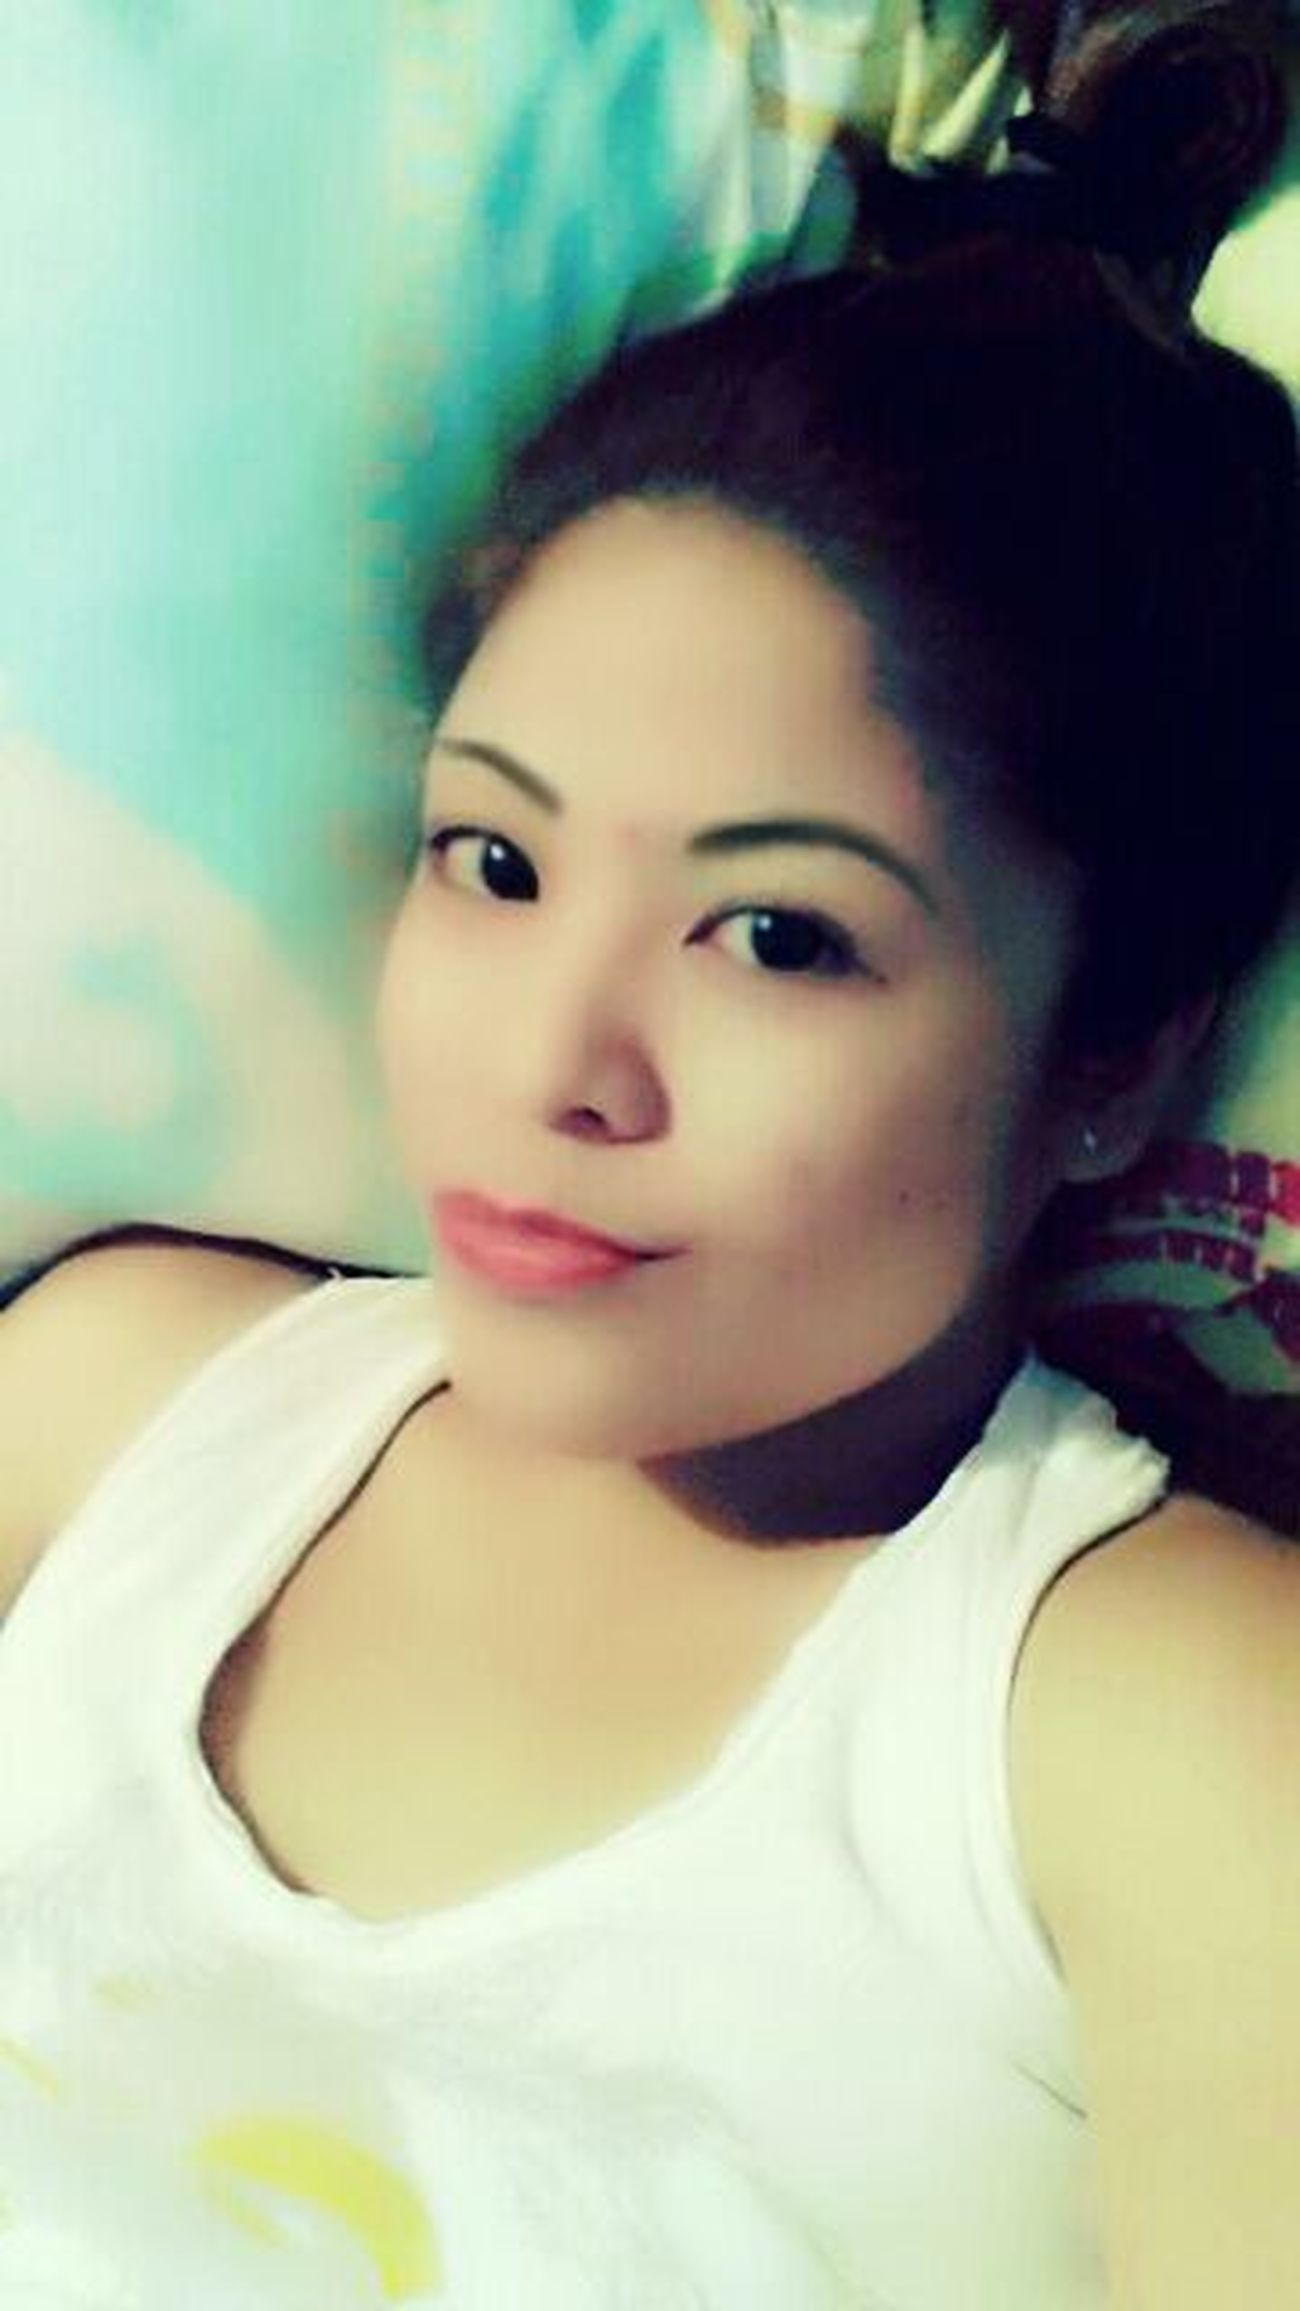 magandang umaga! Fresh Produce Bummyday #stillpretty #bowponytail :) I Got Them Pretty Eyes And Sexy Lips. One Fine Day